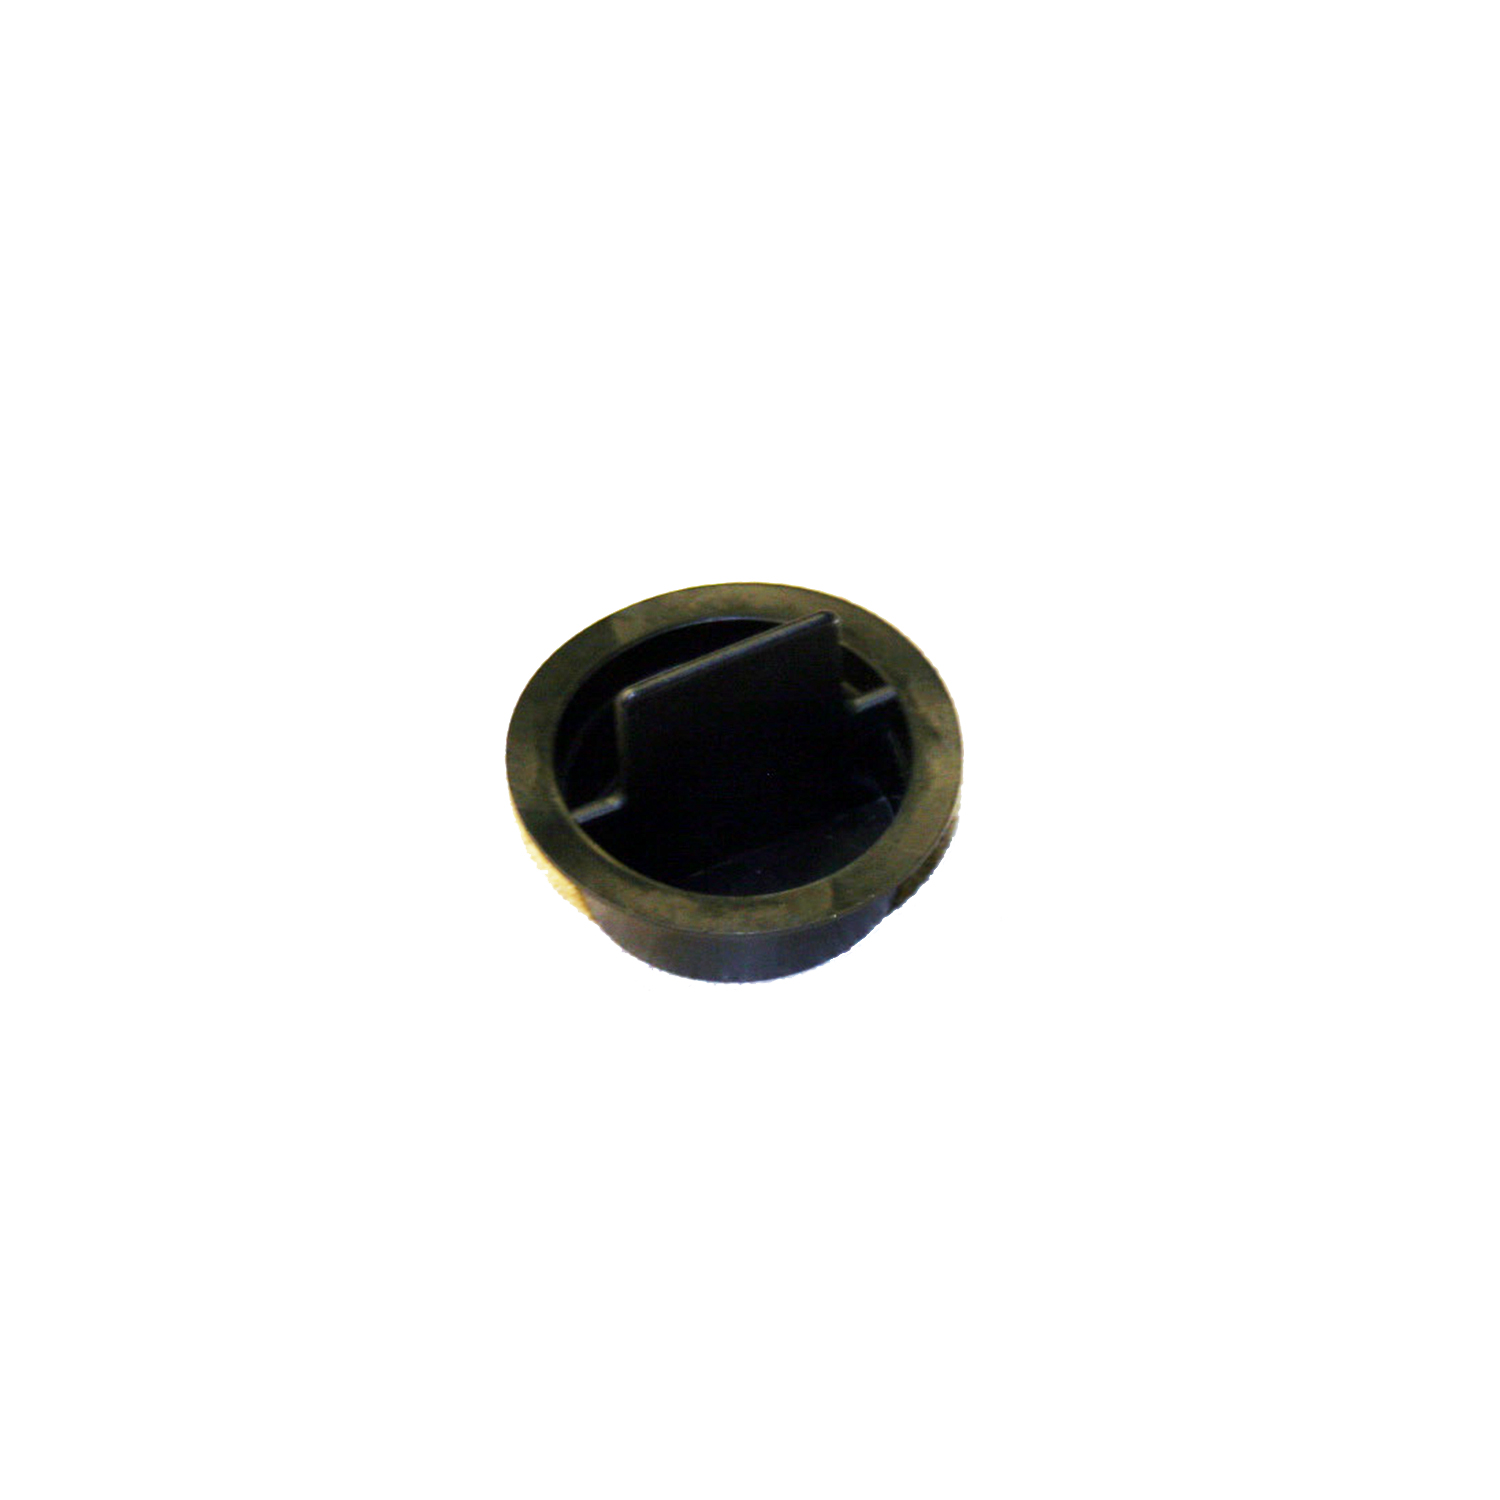 290-0437 Blue Ox Vehicle Baseplate Cap Use To Cover Holes On Blue Ox